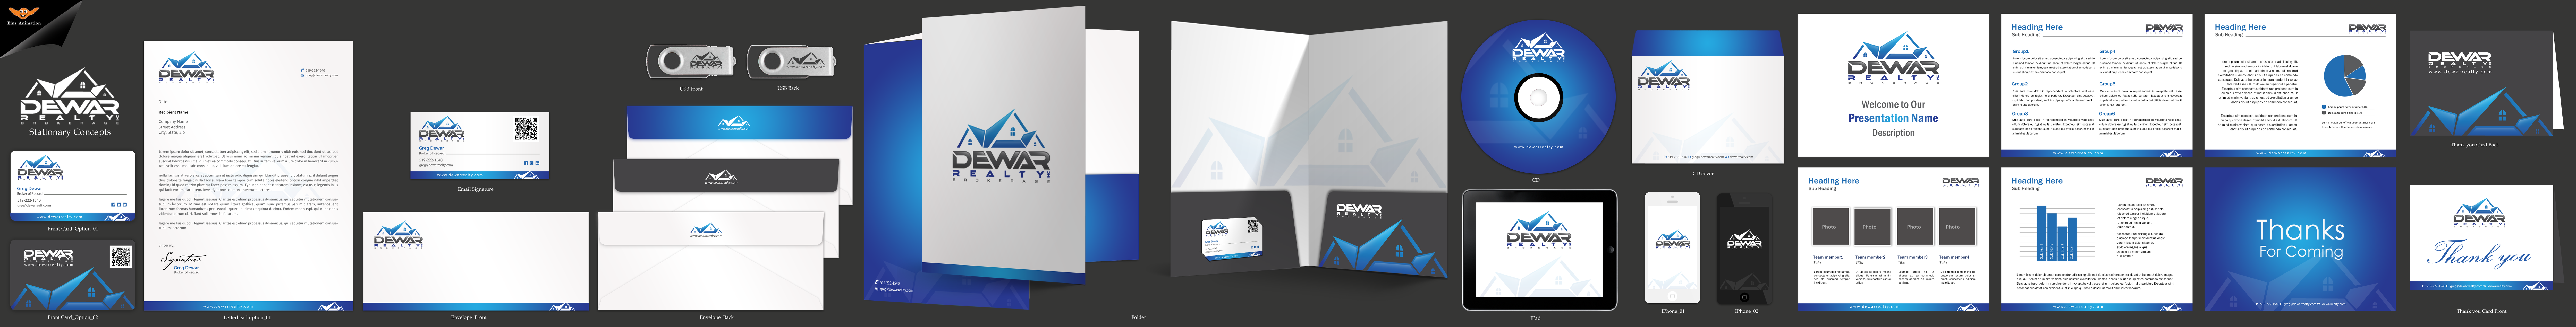 Dewar Realty Stationary Project - Real Estate